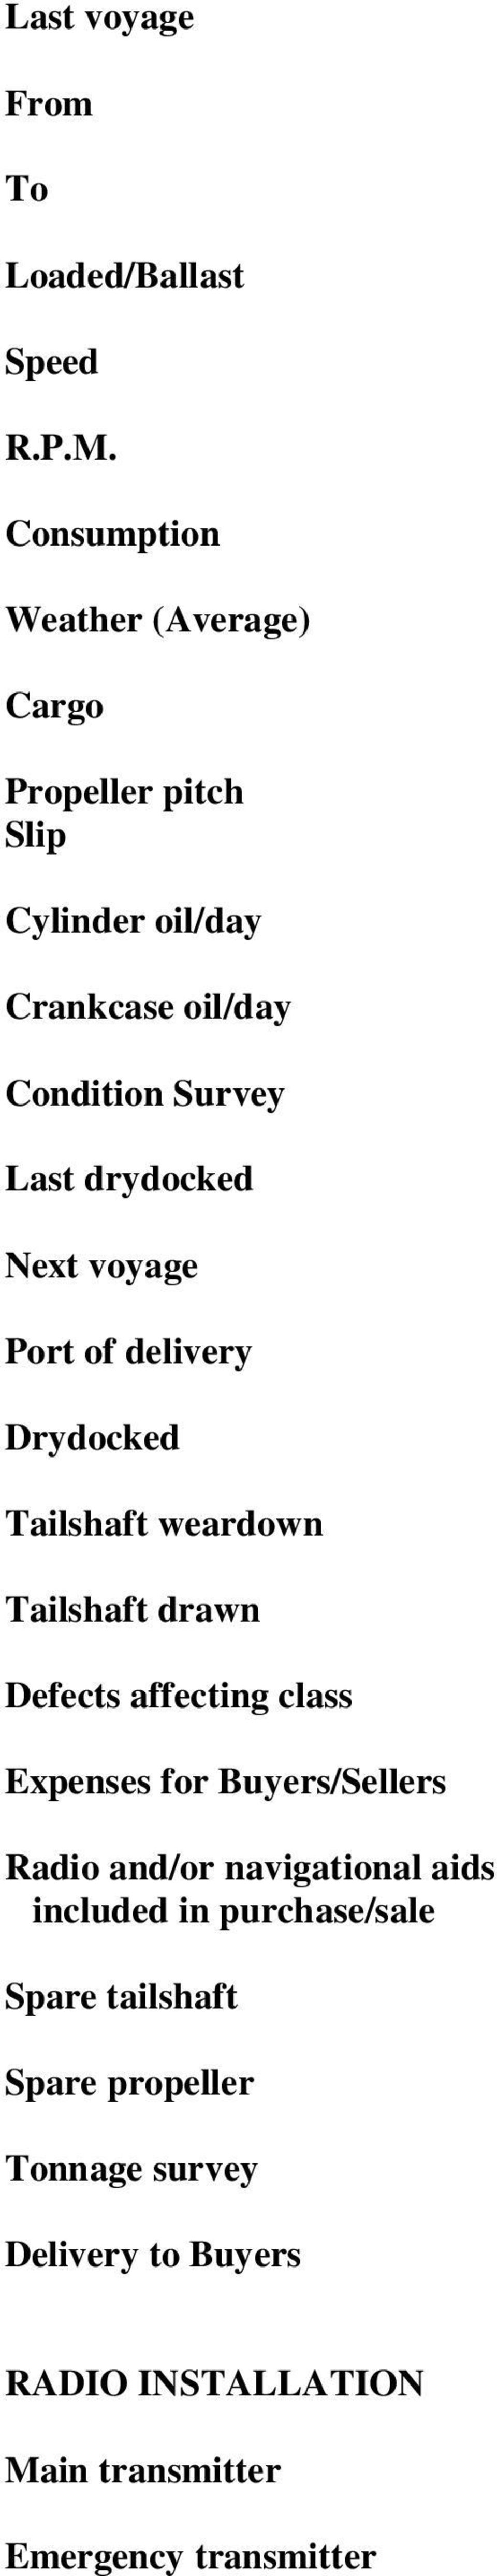 drydocked Next voyage Port of delivery Drydocked Tailshaft weardown Tailshaft drawn Defects affecting class Expenses